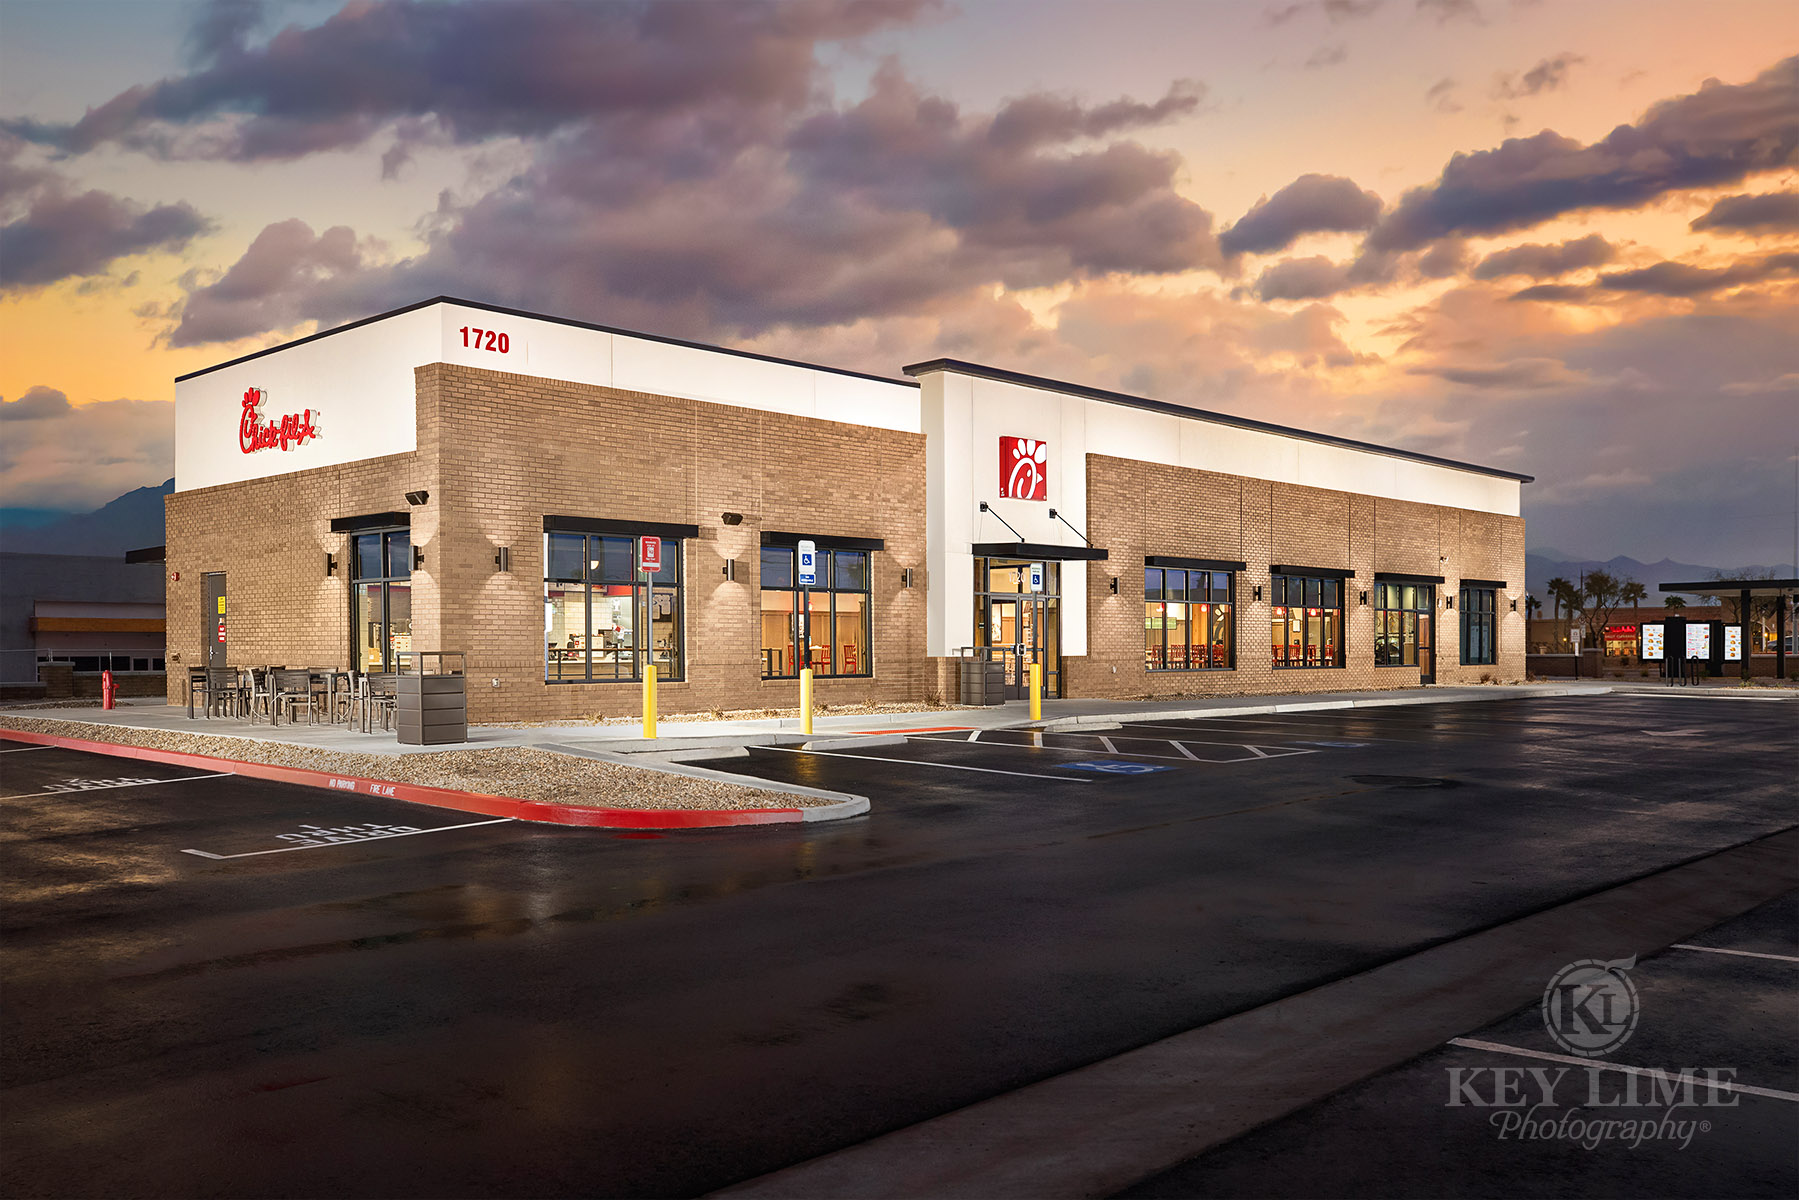 Architecture photography, exterior photo of restaurant chain, commercial